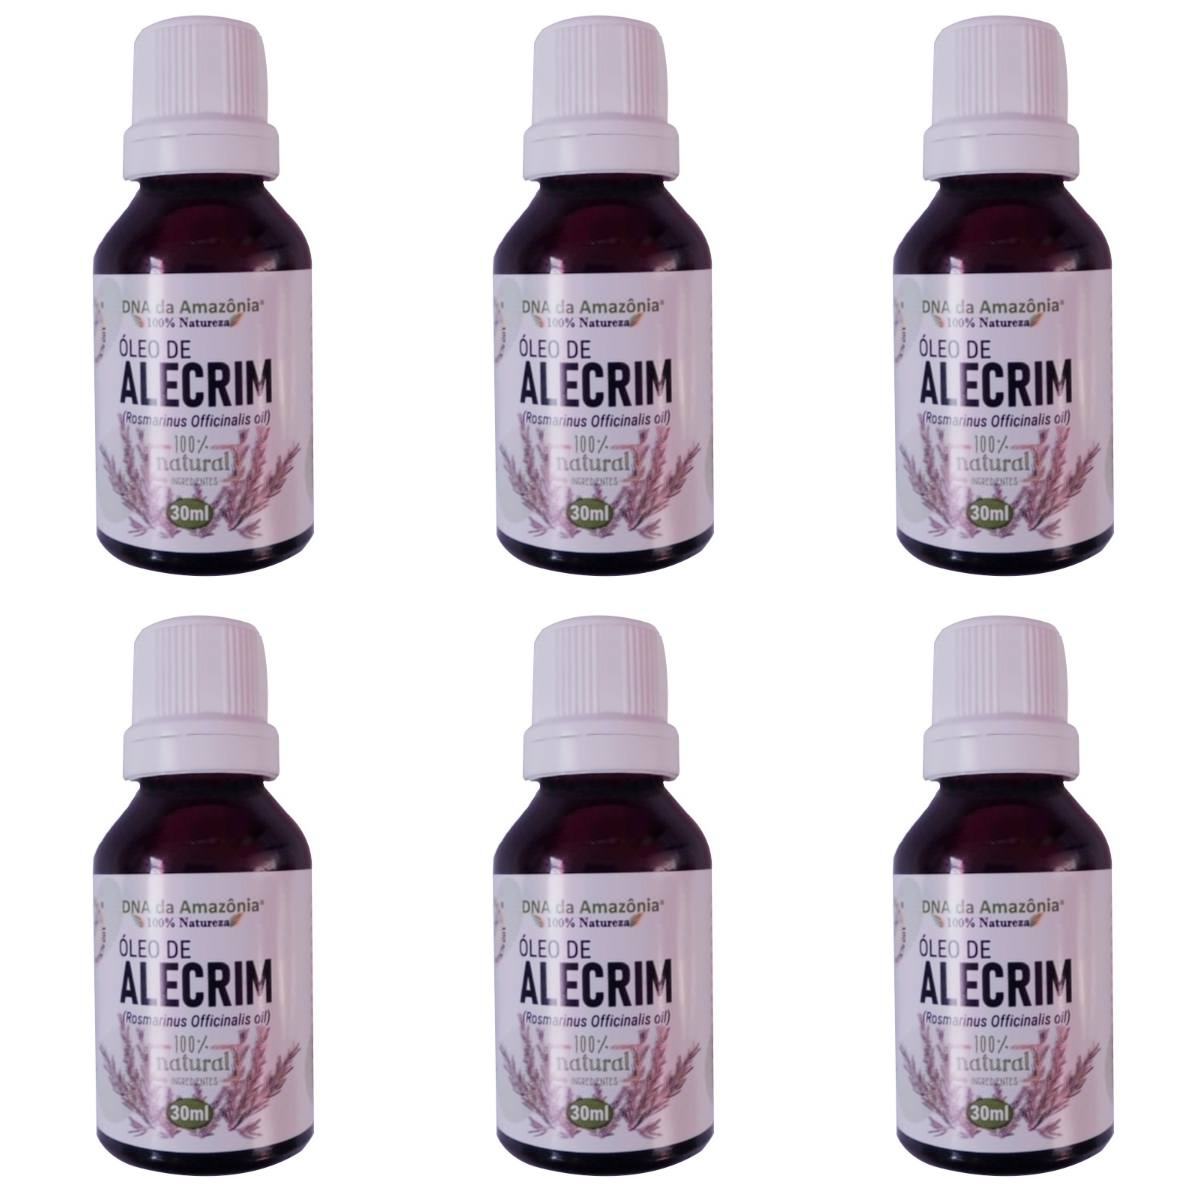 Kit Com 6 Óleos De Alecrim - 30Ml